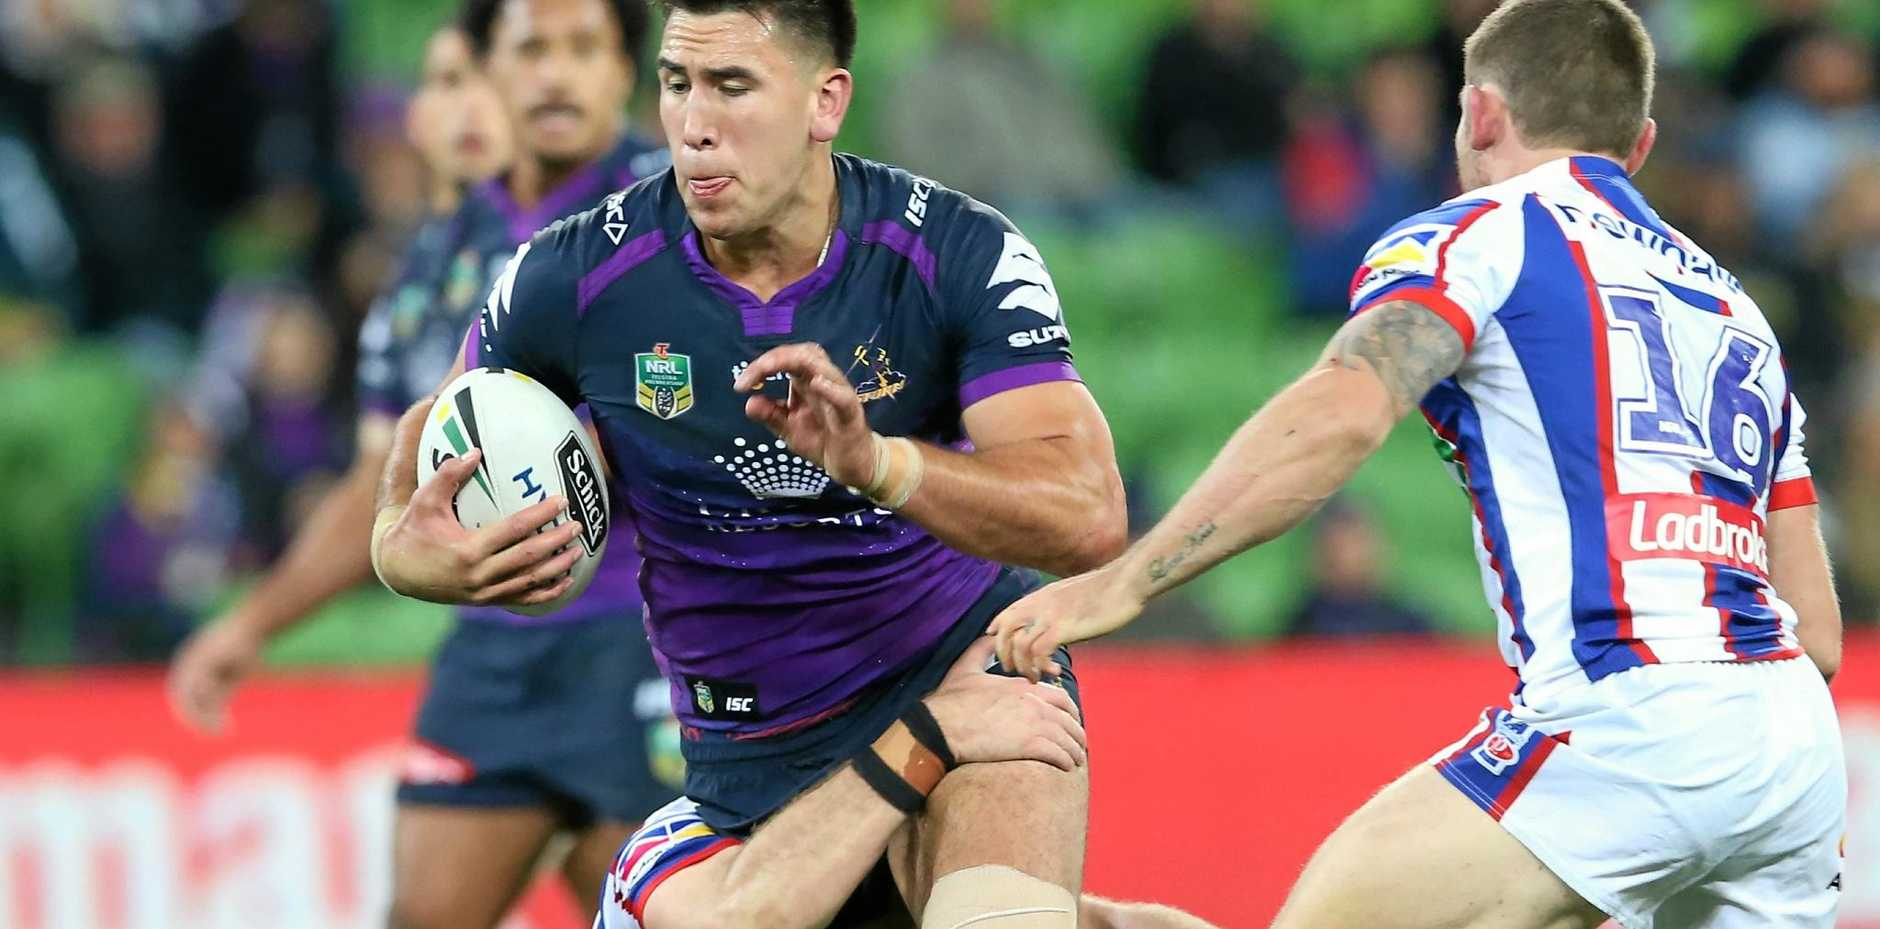 KEY SIGNATURE: Melbourne Storm are expected to announce Nelson Asofa-Solomona has signed a new deal linking him to the club until 2019.